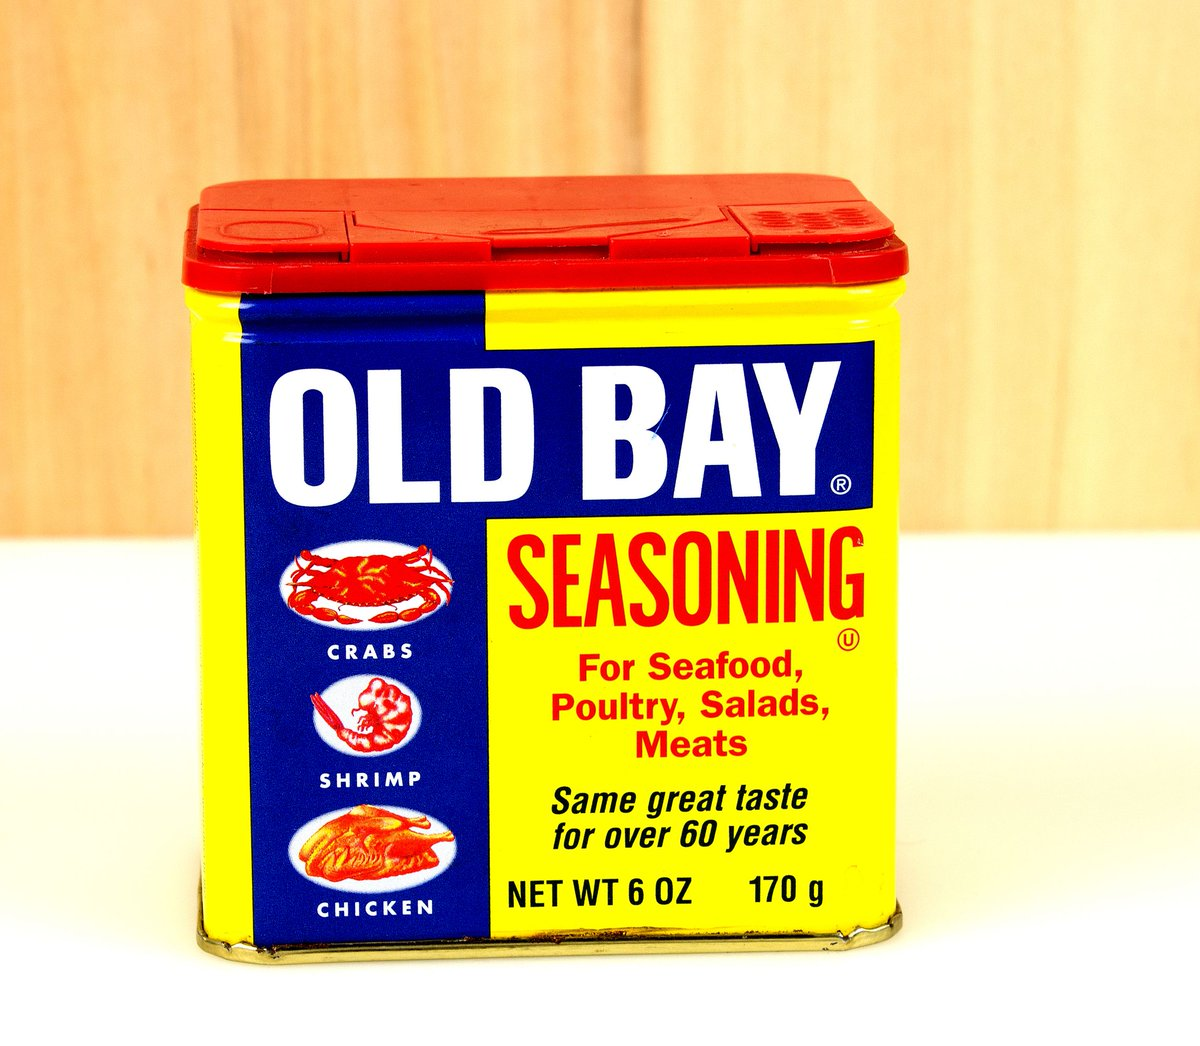 Maker of Old Bay seasoning sues wannabe spice rival, the annoyingly named 'New Bae' https://t.co/Kj8KqDO7AM